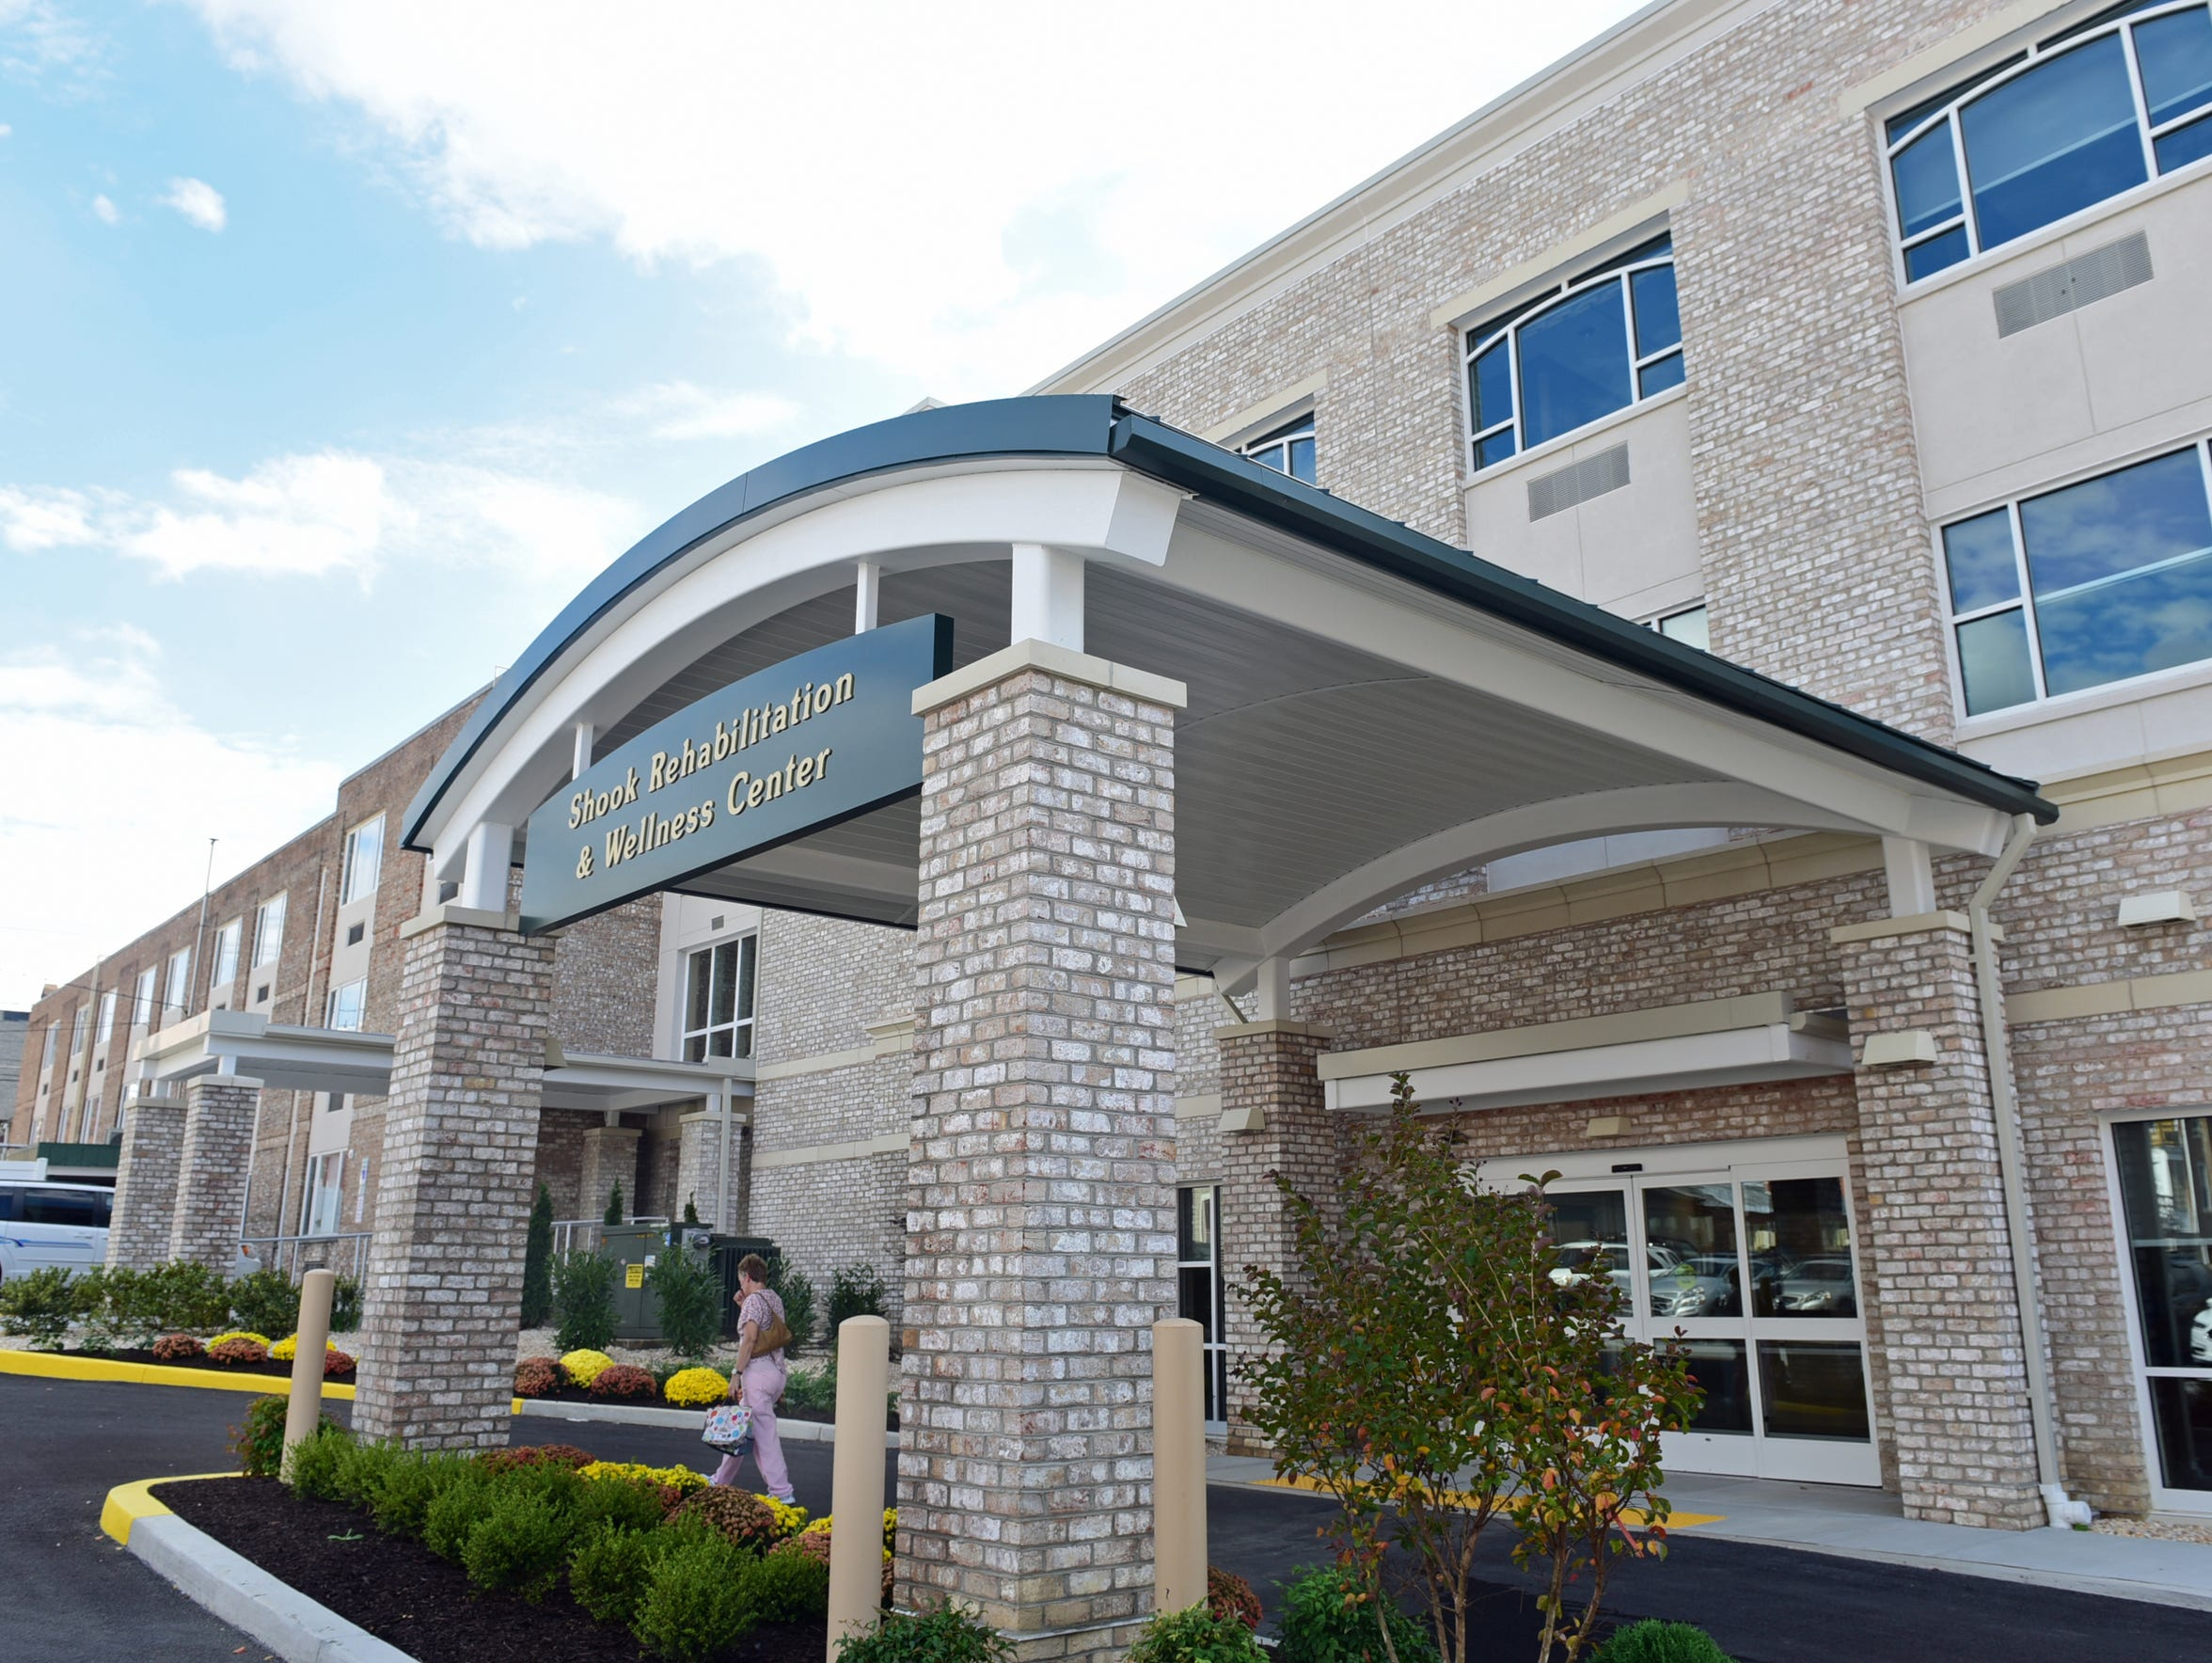 Shook Rehabilitation and Wellness Center is an addition